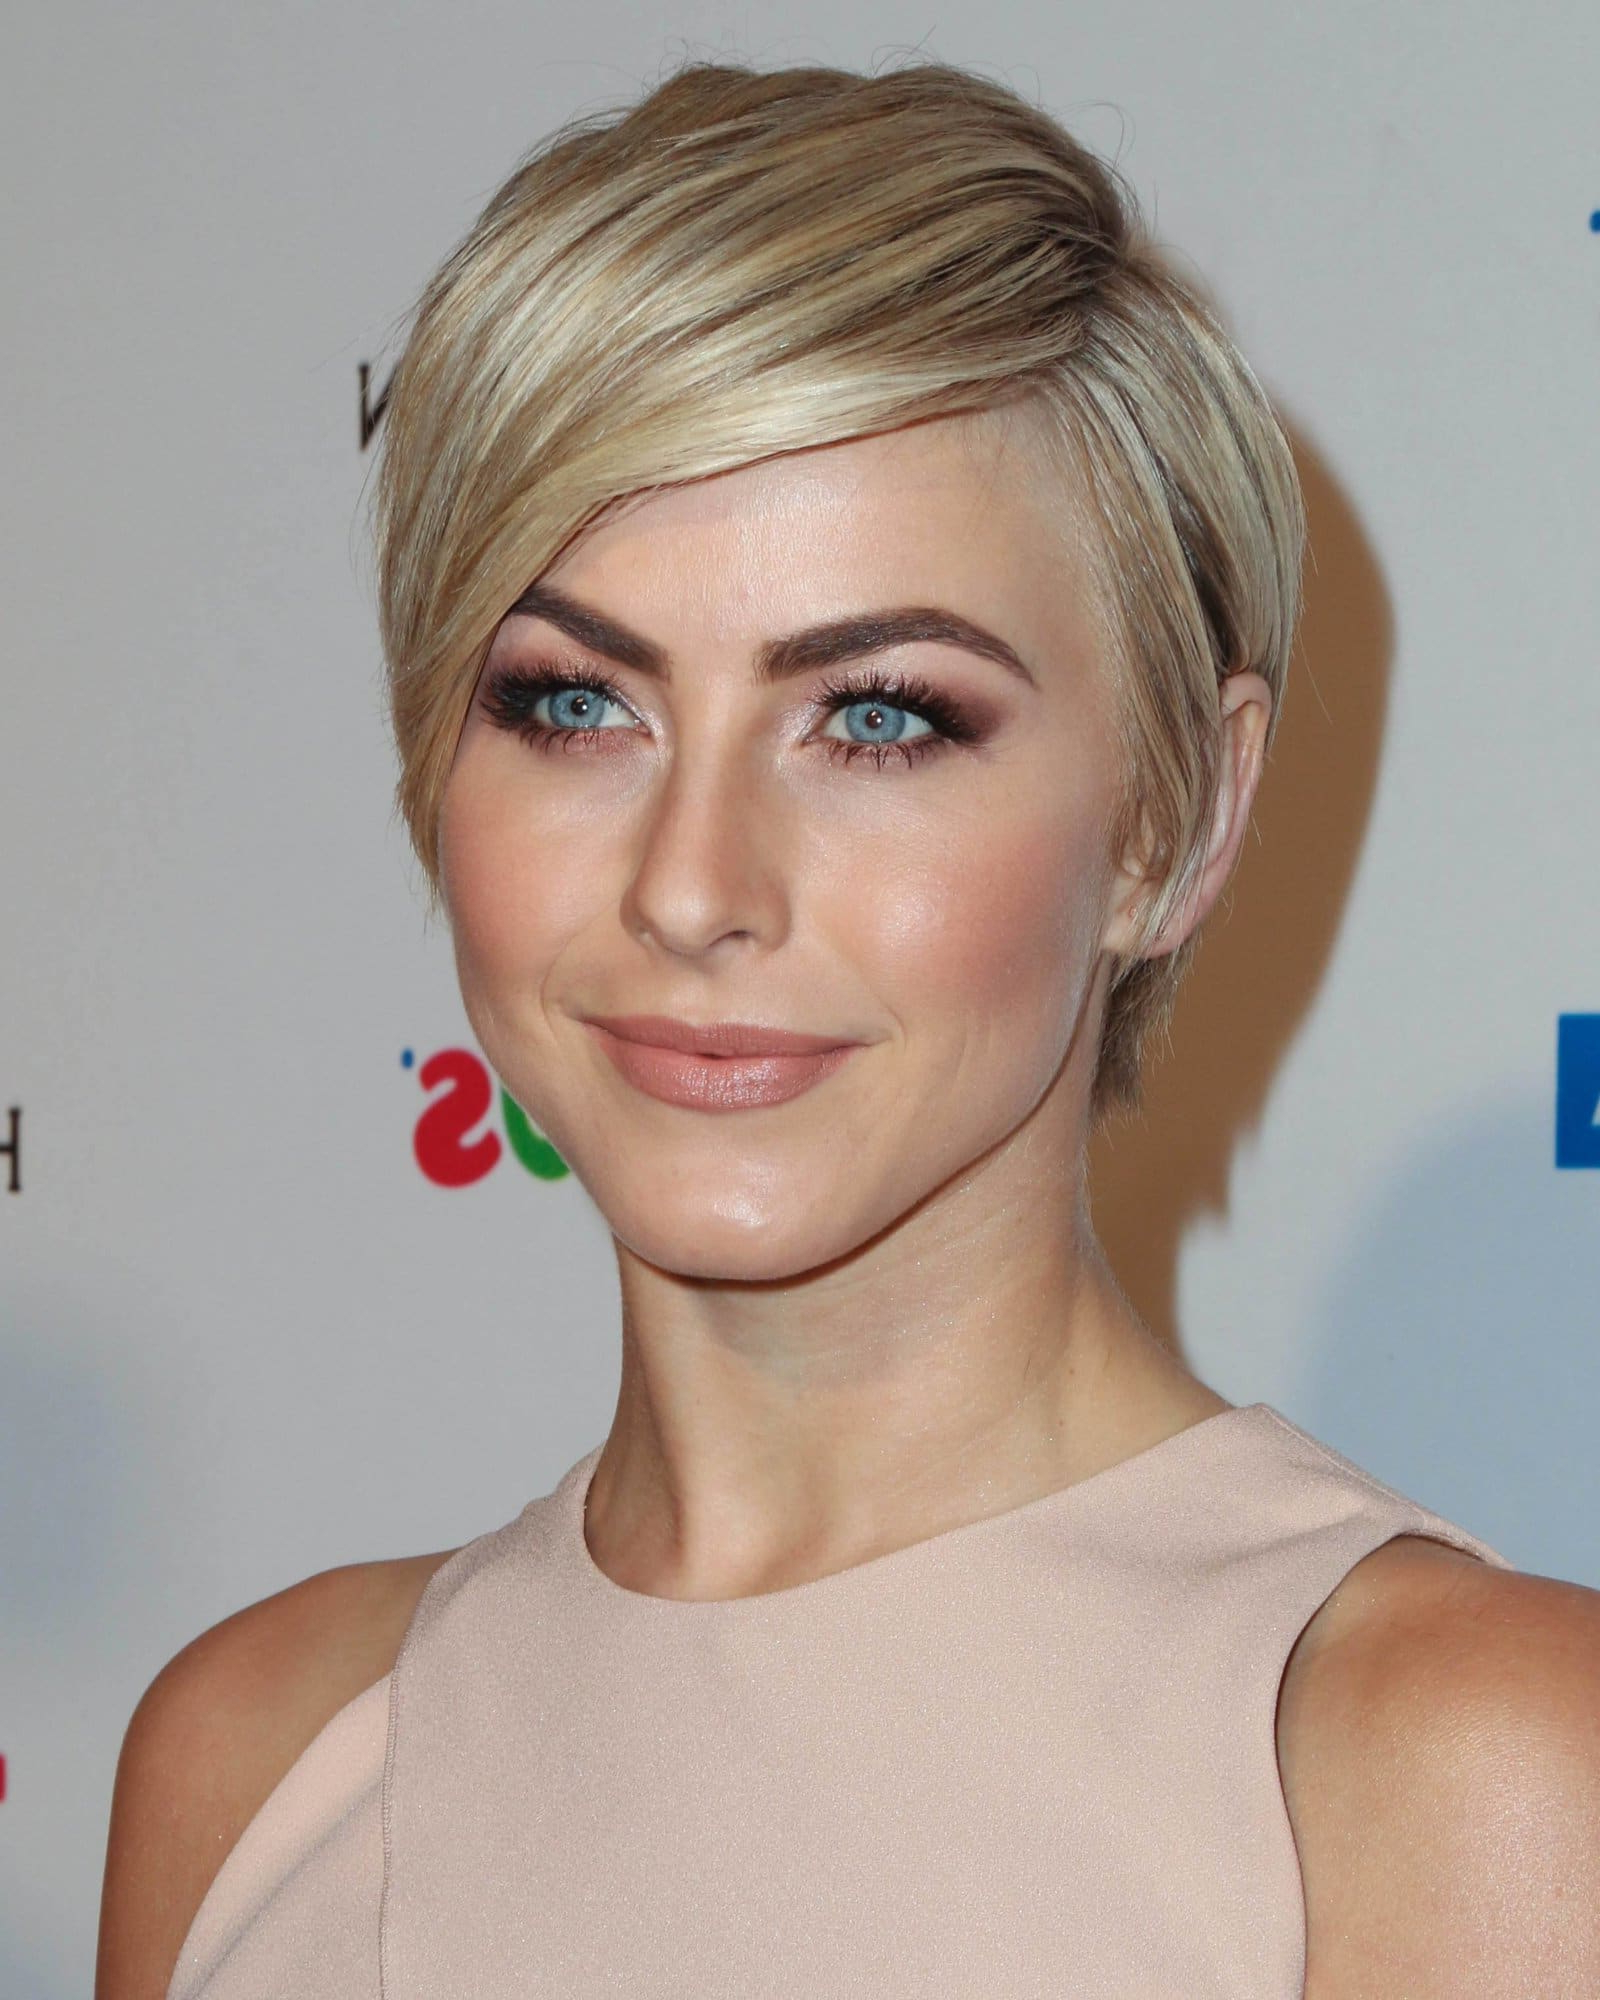 12 Best Celebrity Short Hairstyles – Fame Focus For Julianne Hough Short Hairstyles (View 25 of 25)